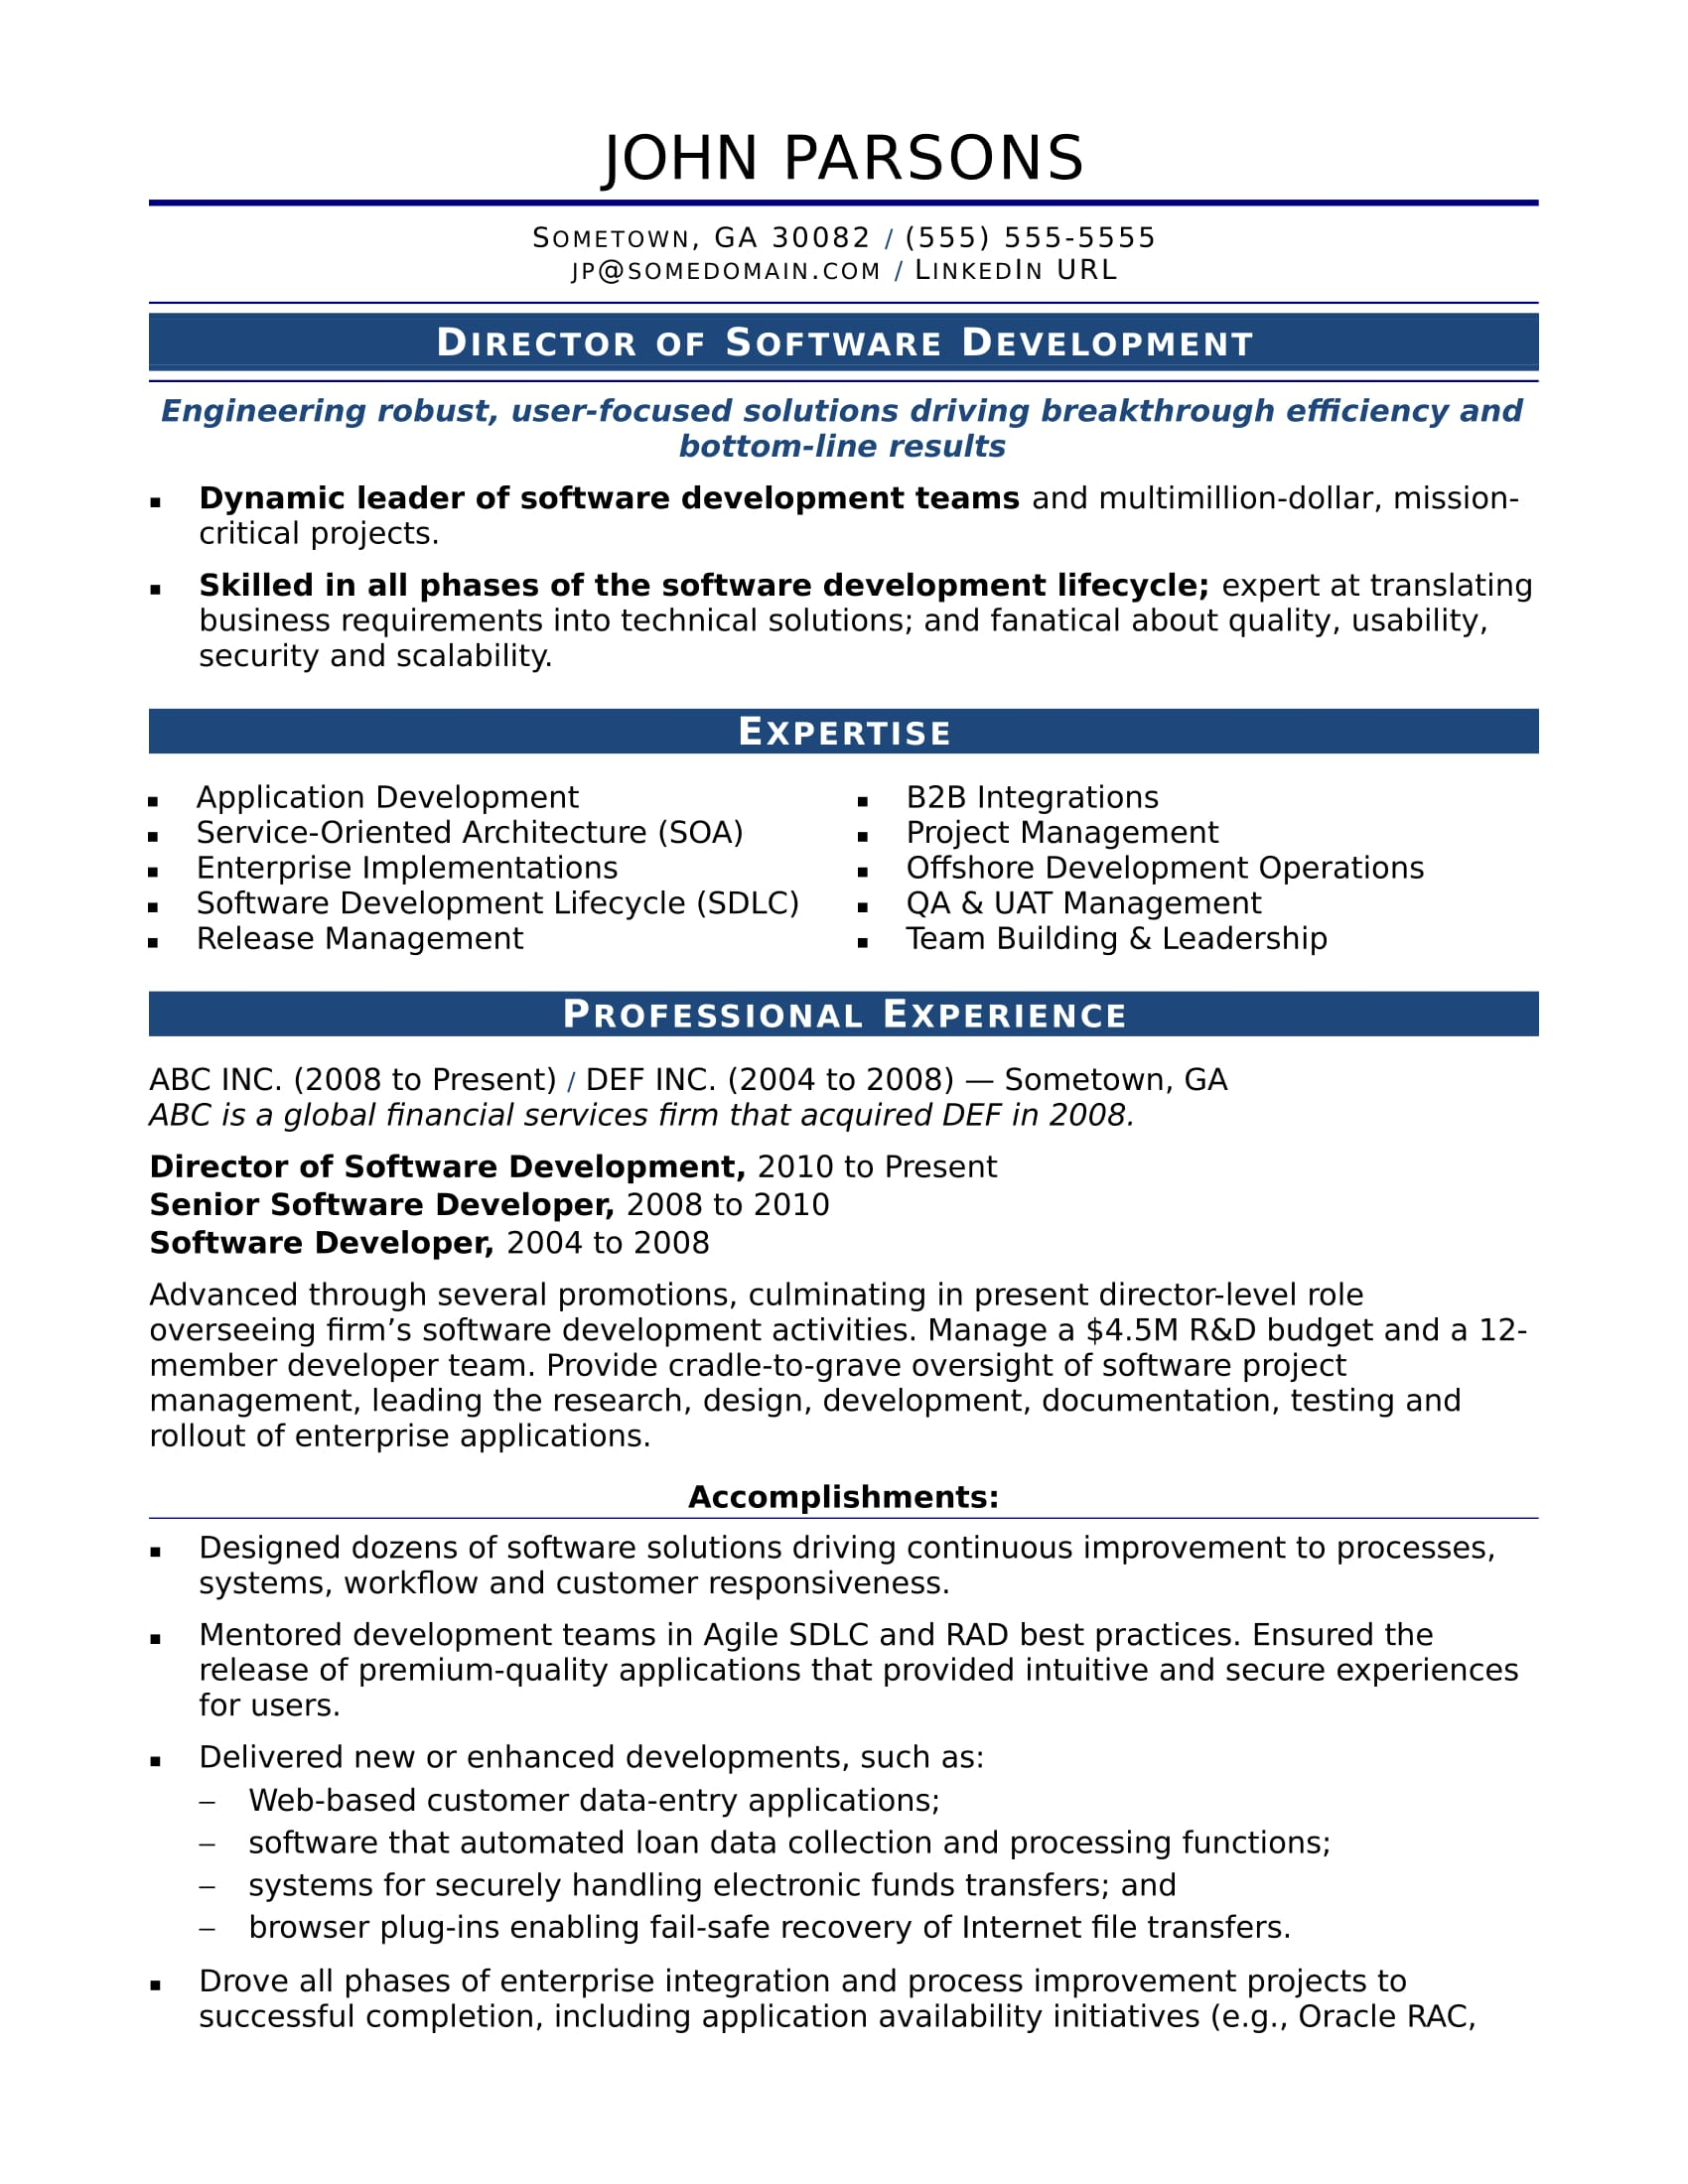 Resume Format For 1 Year Experienced Software Developer Sample Resume For An Experienced It Developer Monster